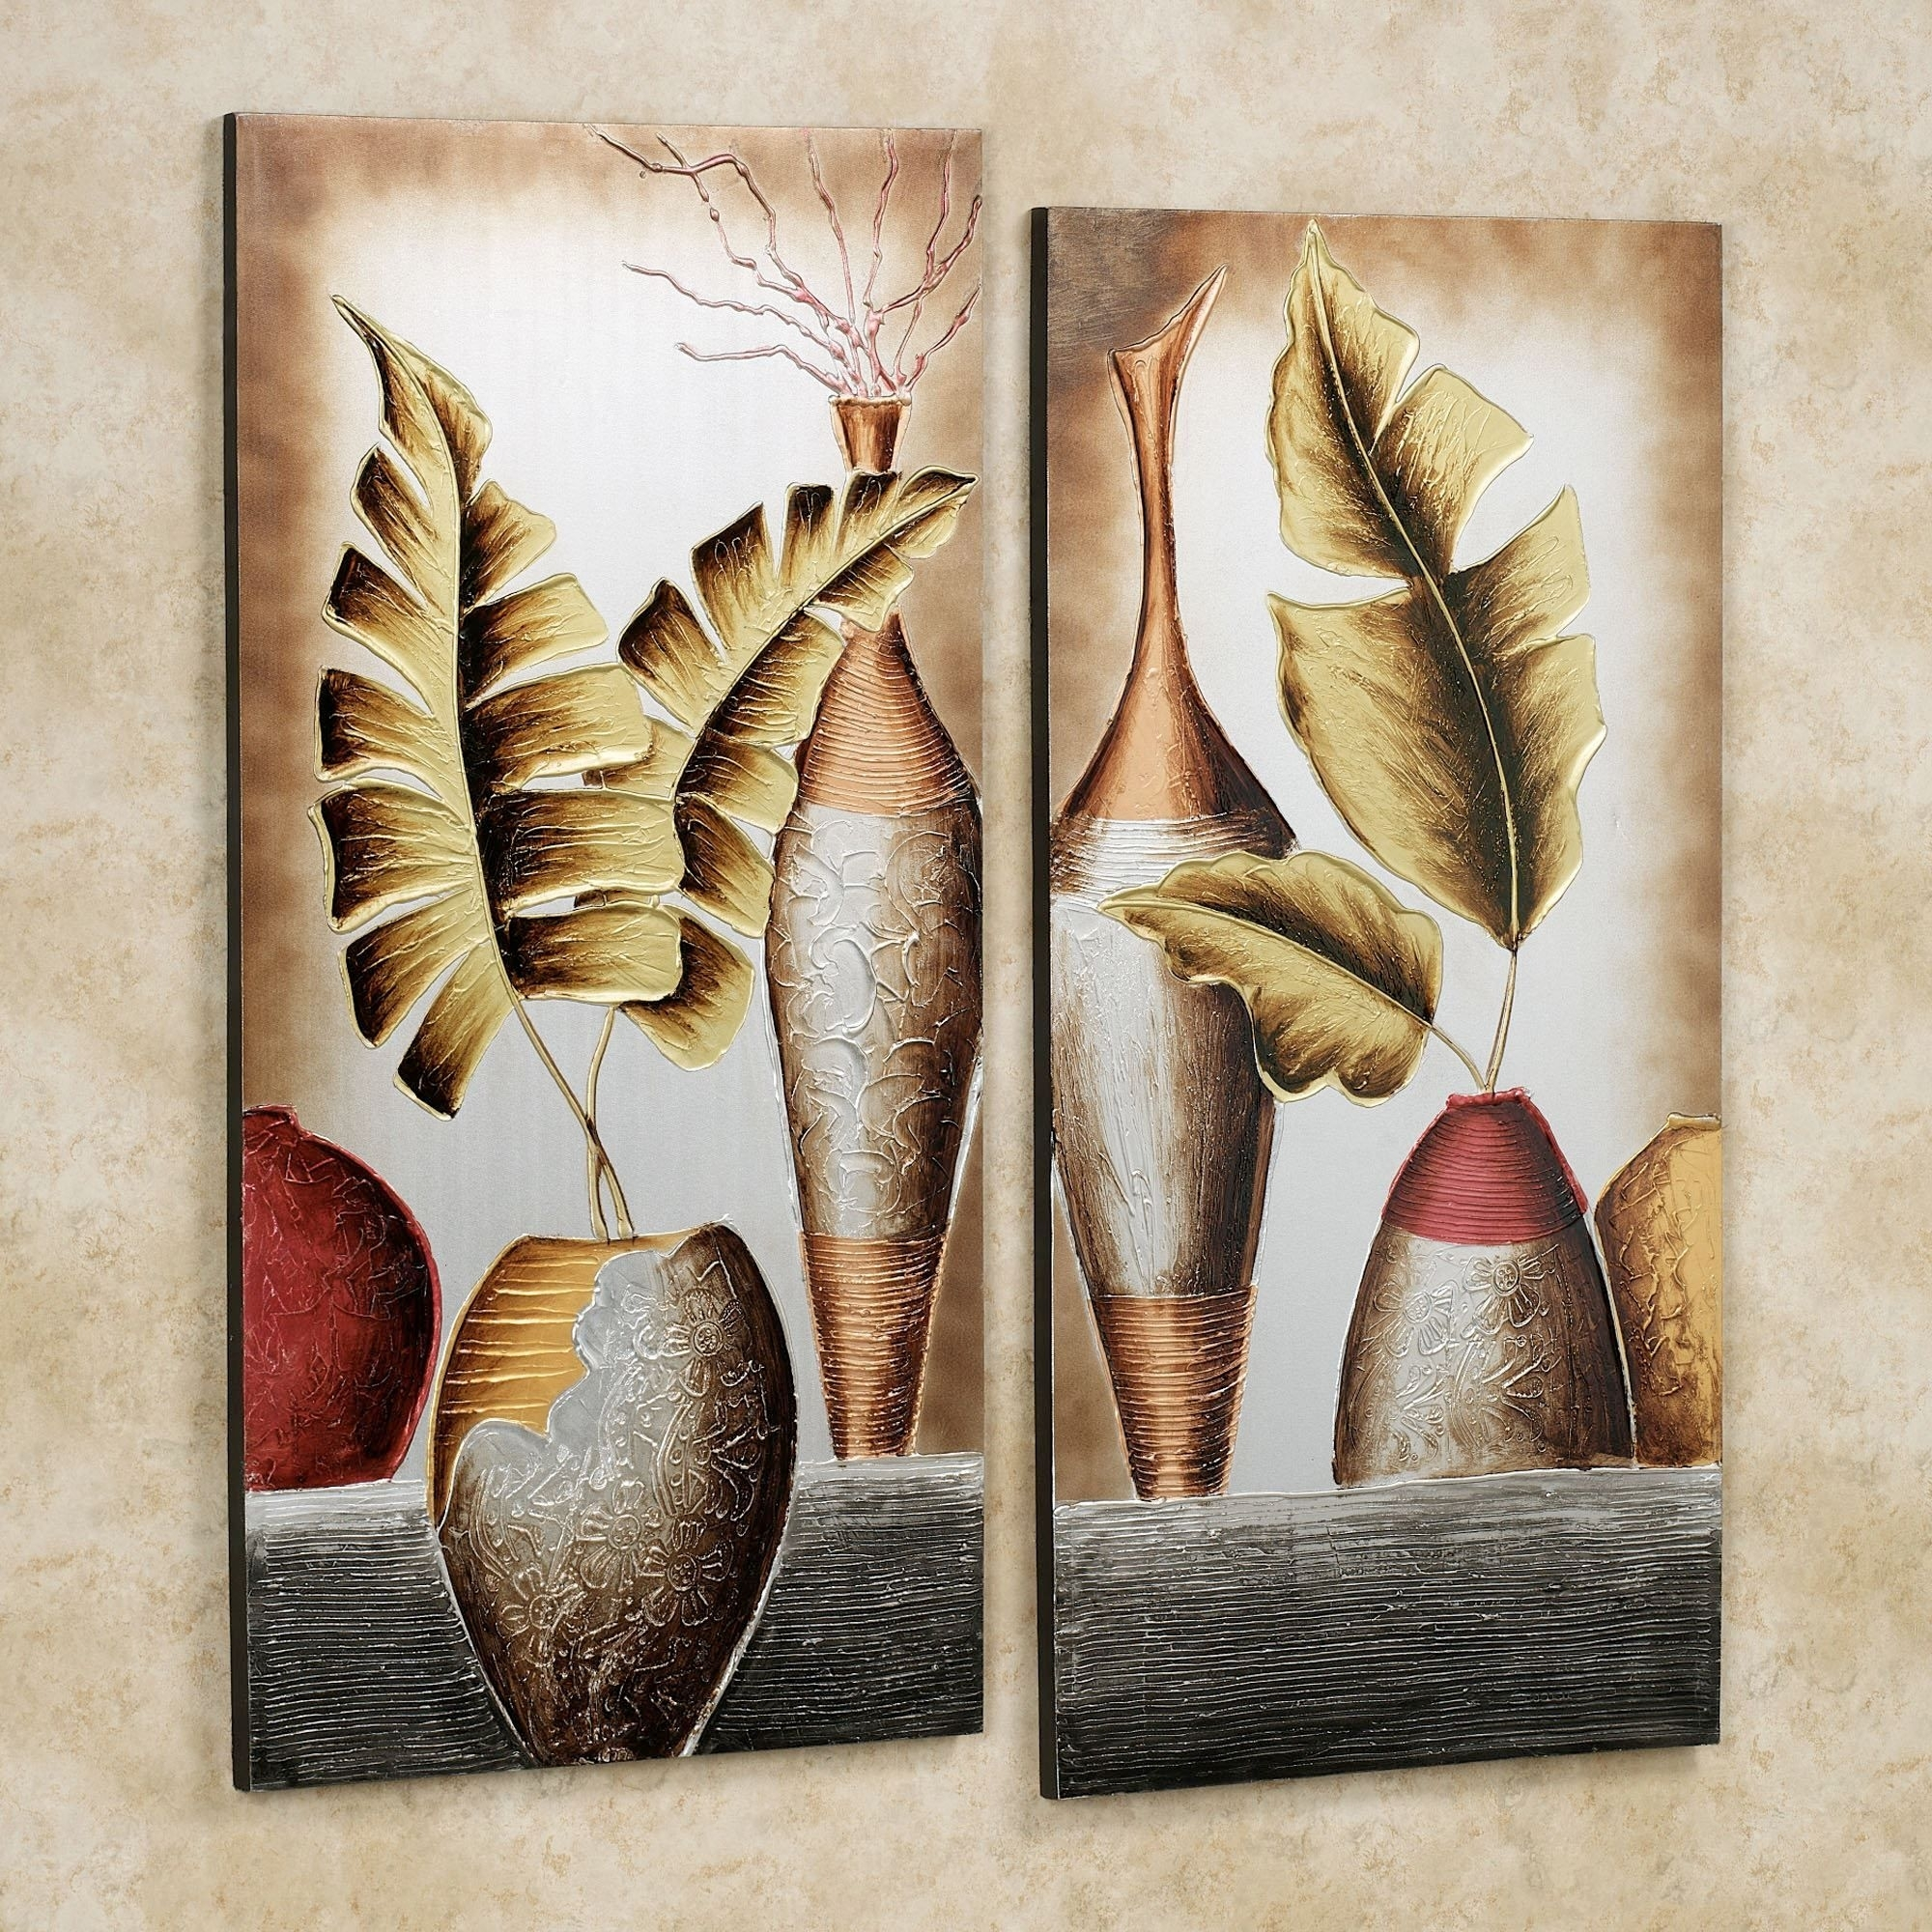 Grecian Pottery Canvas Wall Art Set | ???? ??????????? | Pinterest For Latest Canvas Wall Art Sets (Gallery 5 of 15)